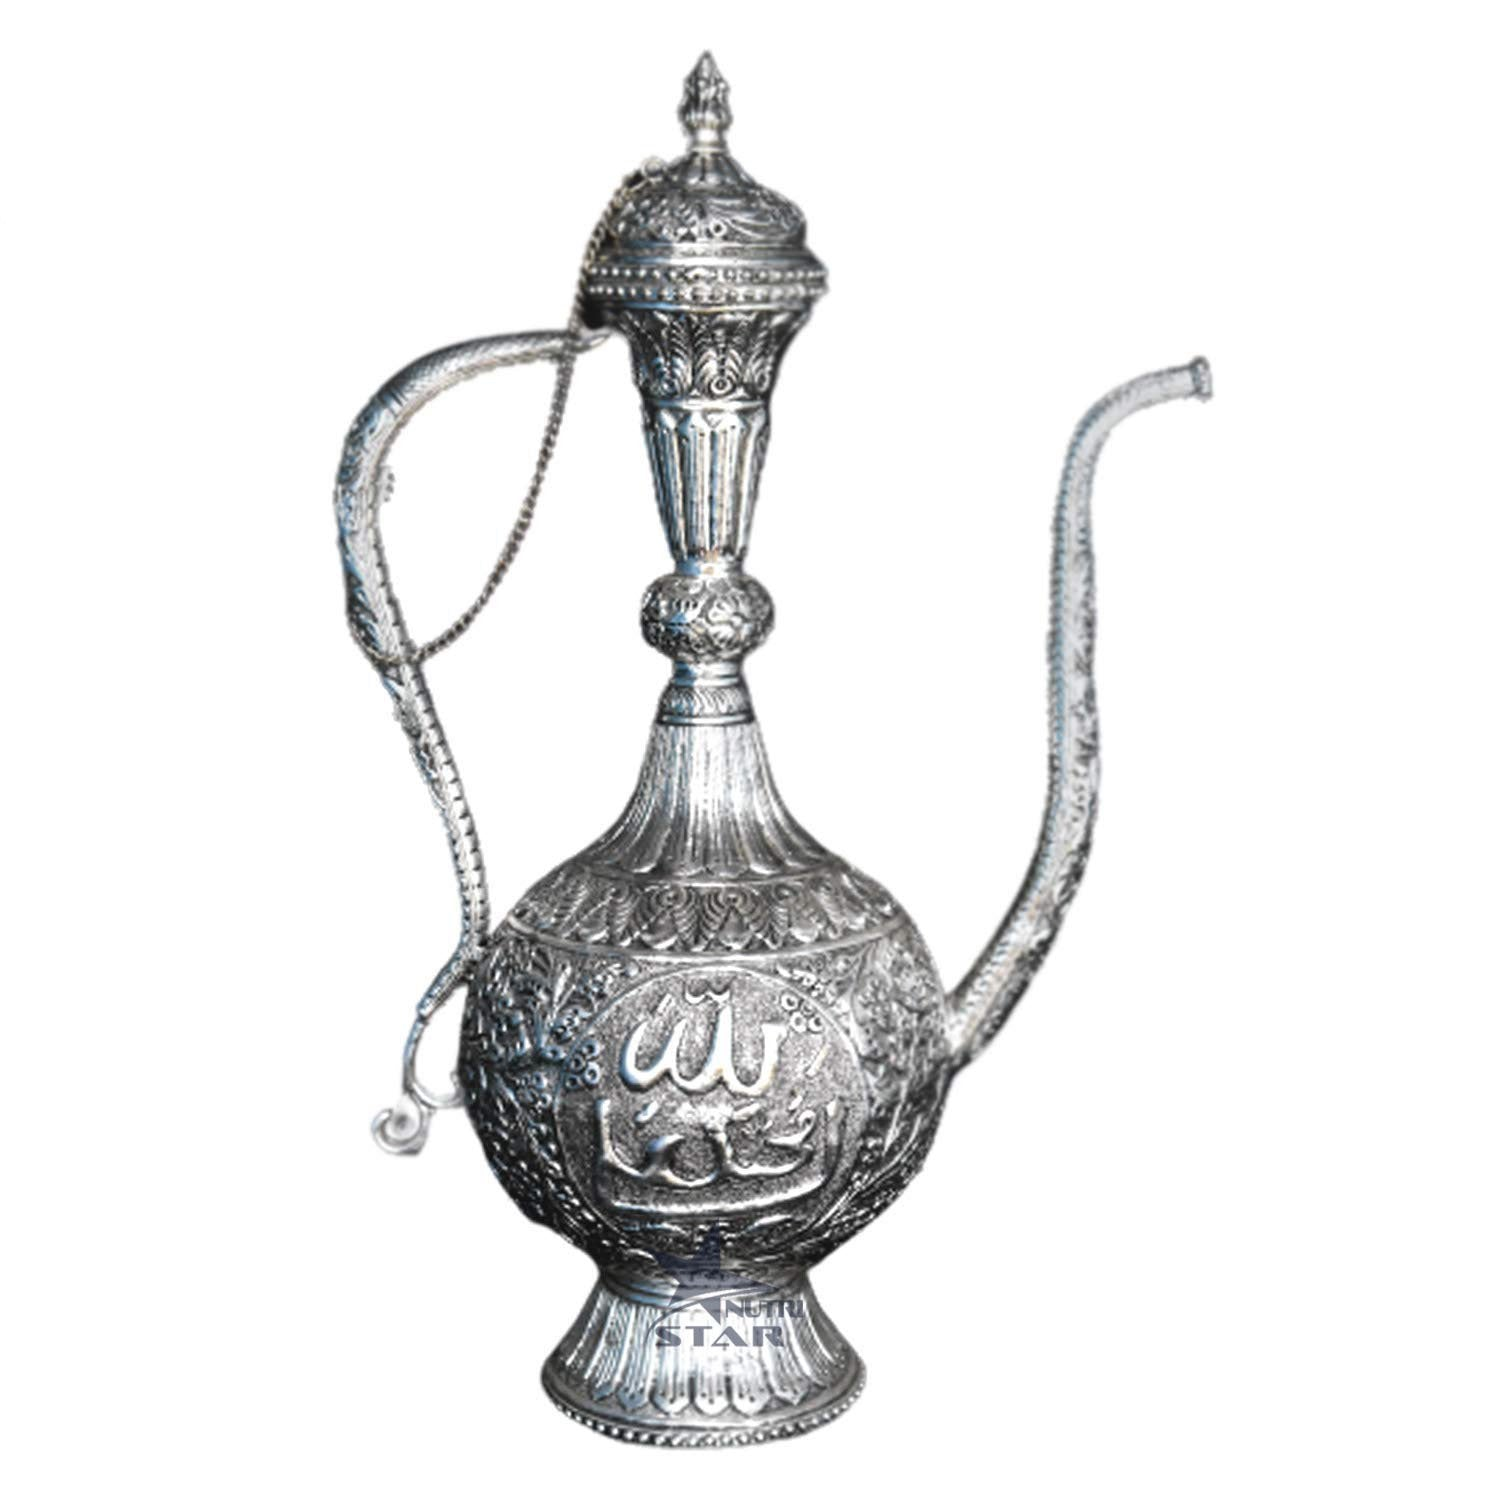 Hand Crafted Aftaba Showpiece with Nakkashi Design. Pure Copper Silver Coated Surhai mughul era- Showpiece for Home Decor.